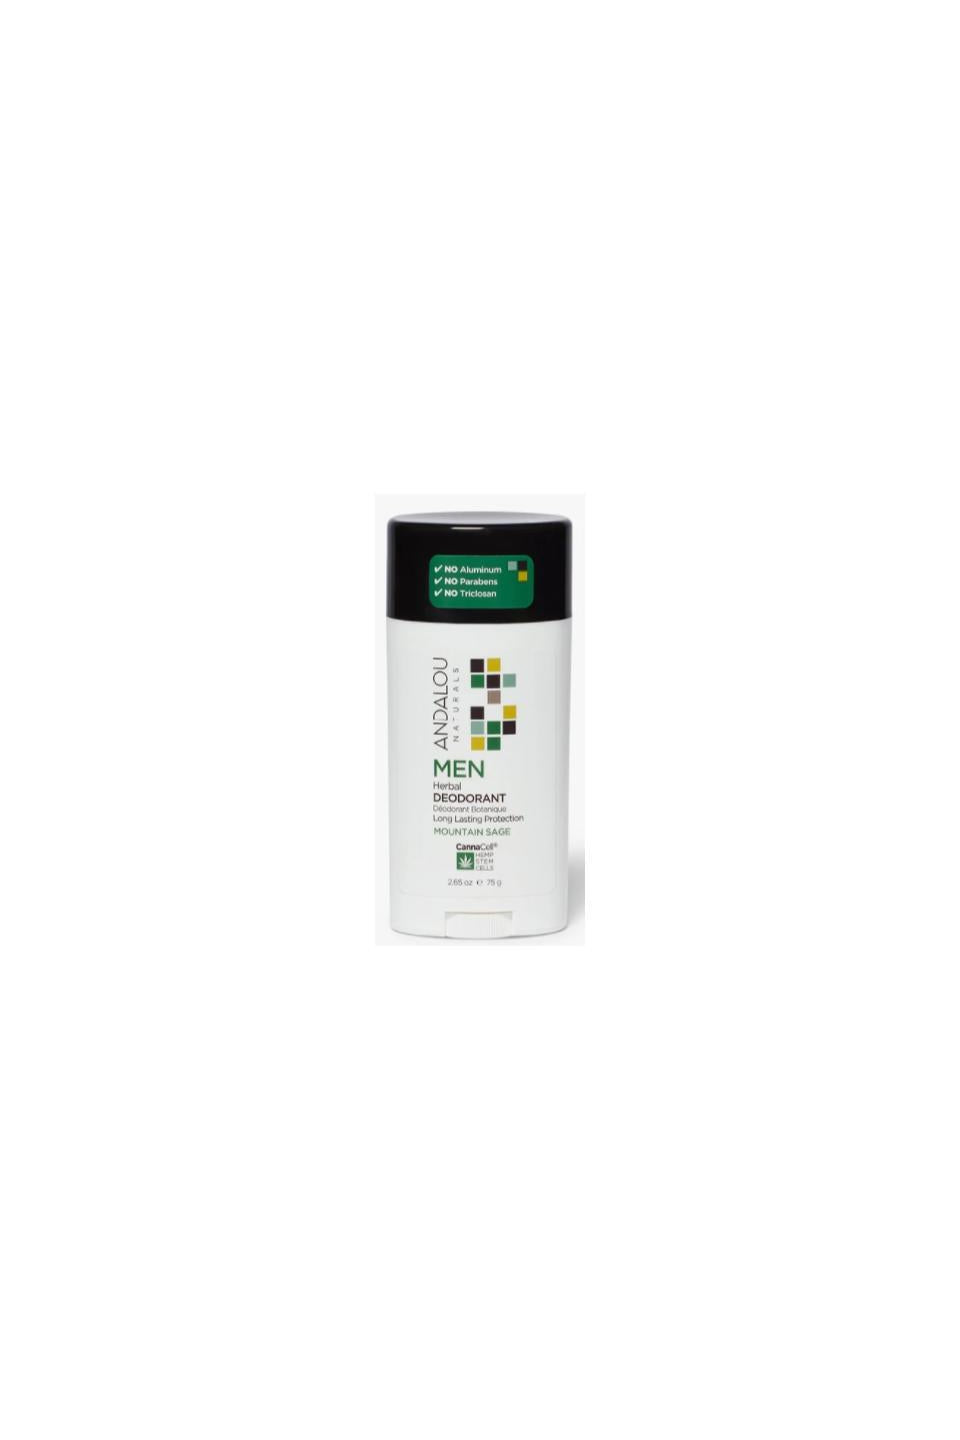 Andalou Men Deodorant Mountain Sage 75g